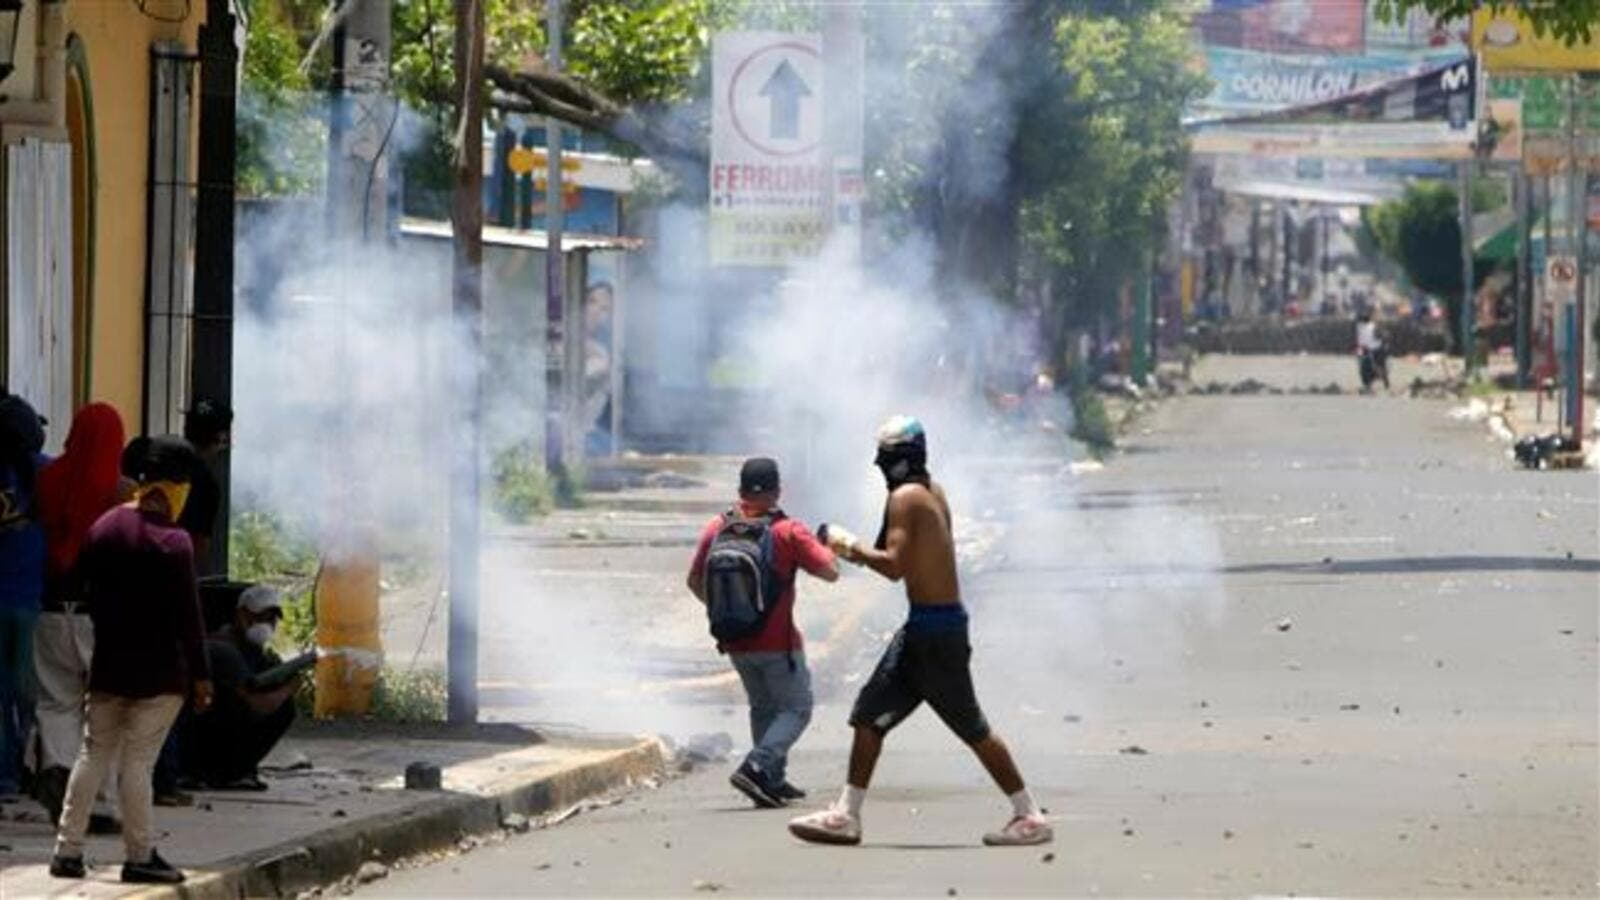 Demonstrators clash with riot police during protests in Monimbo neighborhood in Masaya, Nicaragua on June 2, 2018. (AFP/ File Photo)